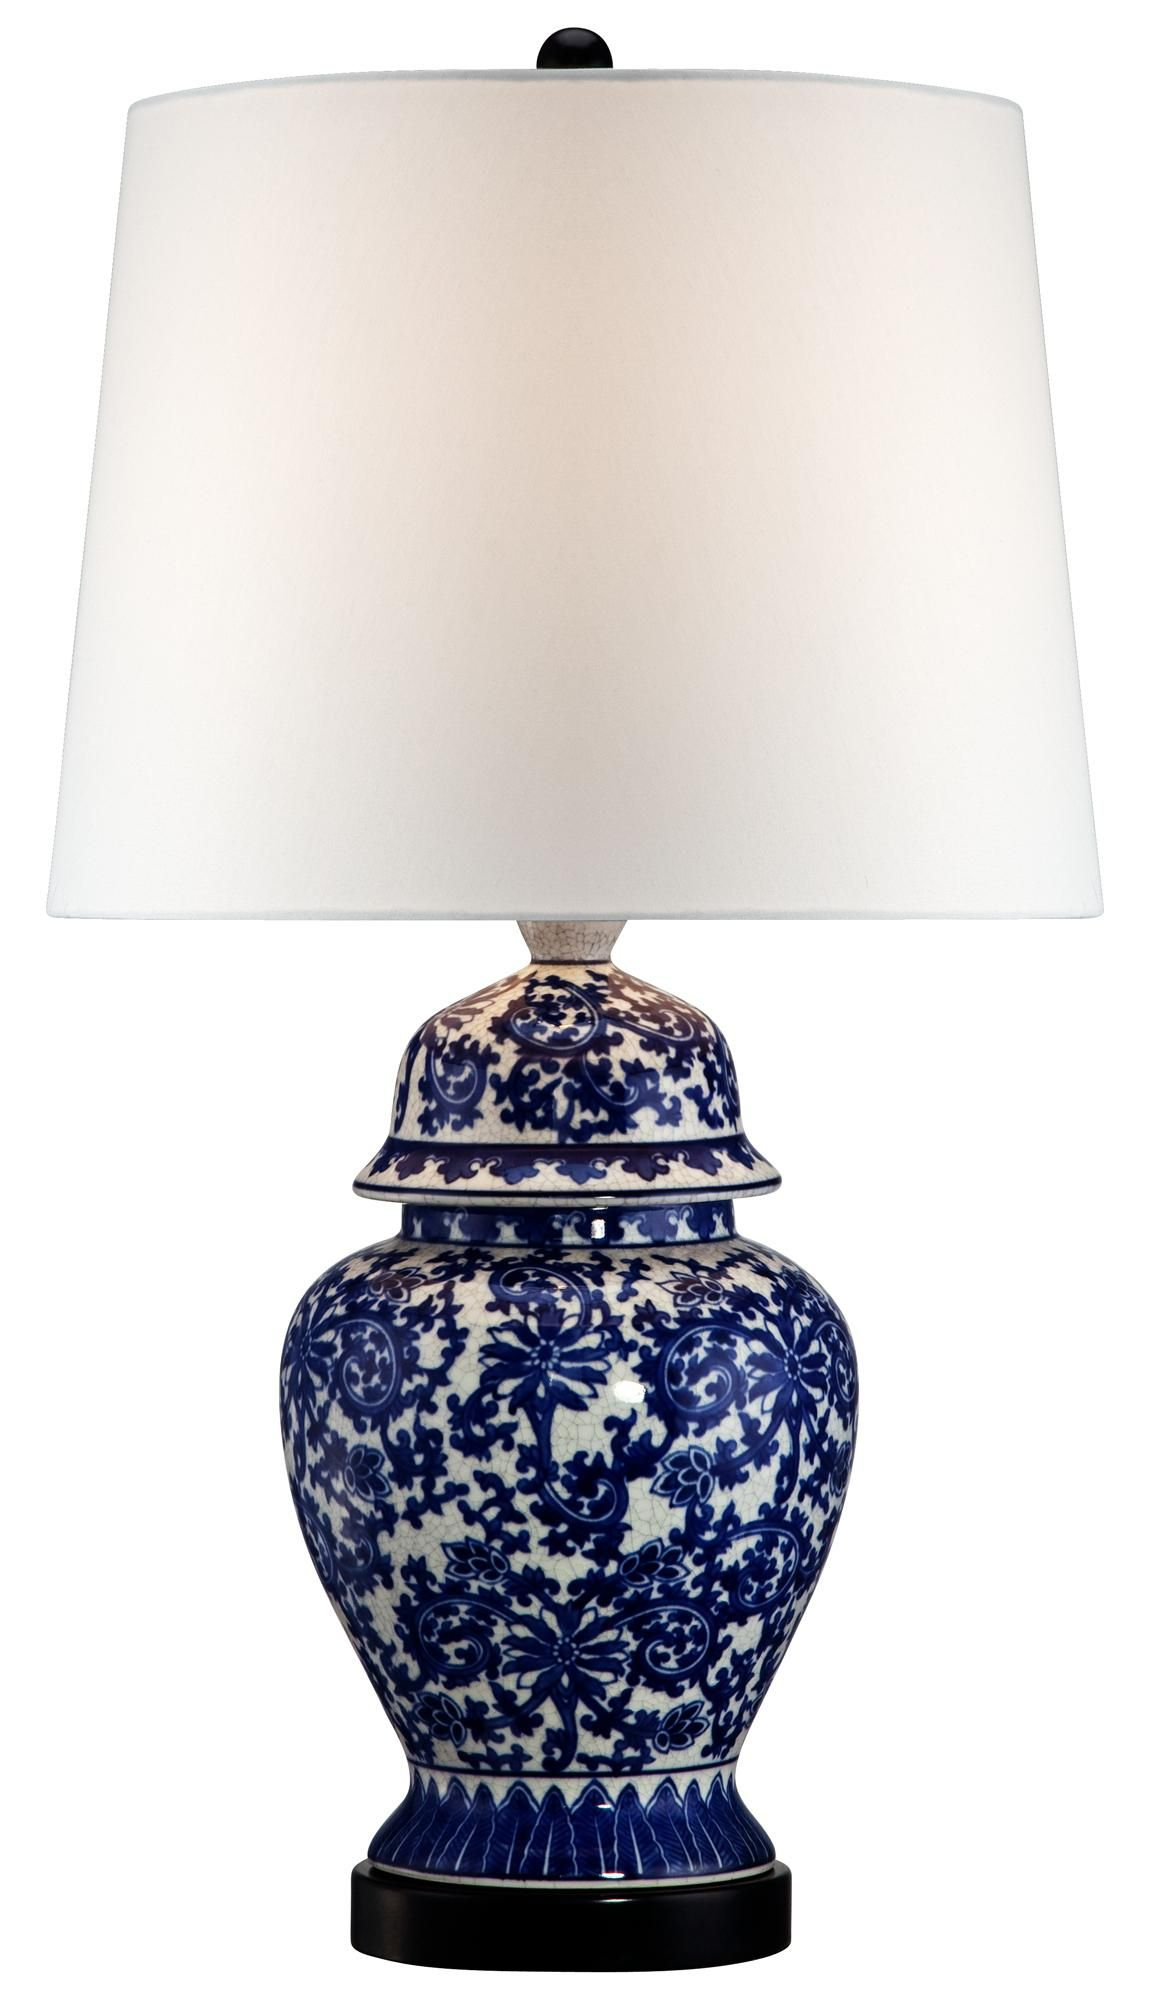 Blue and white porcelain temple jar table lamp style r2462 blue and white porcelain temple jar table lamp style r2462 geotapseo Image collections